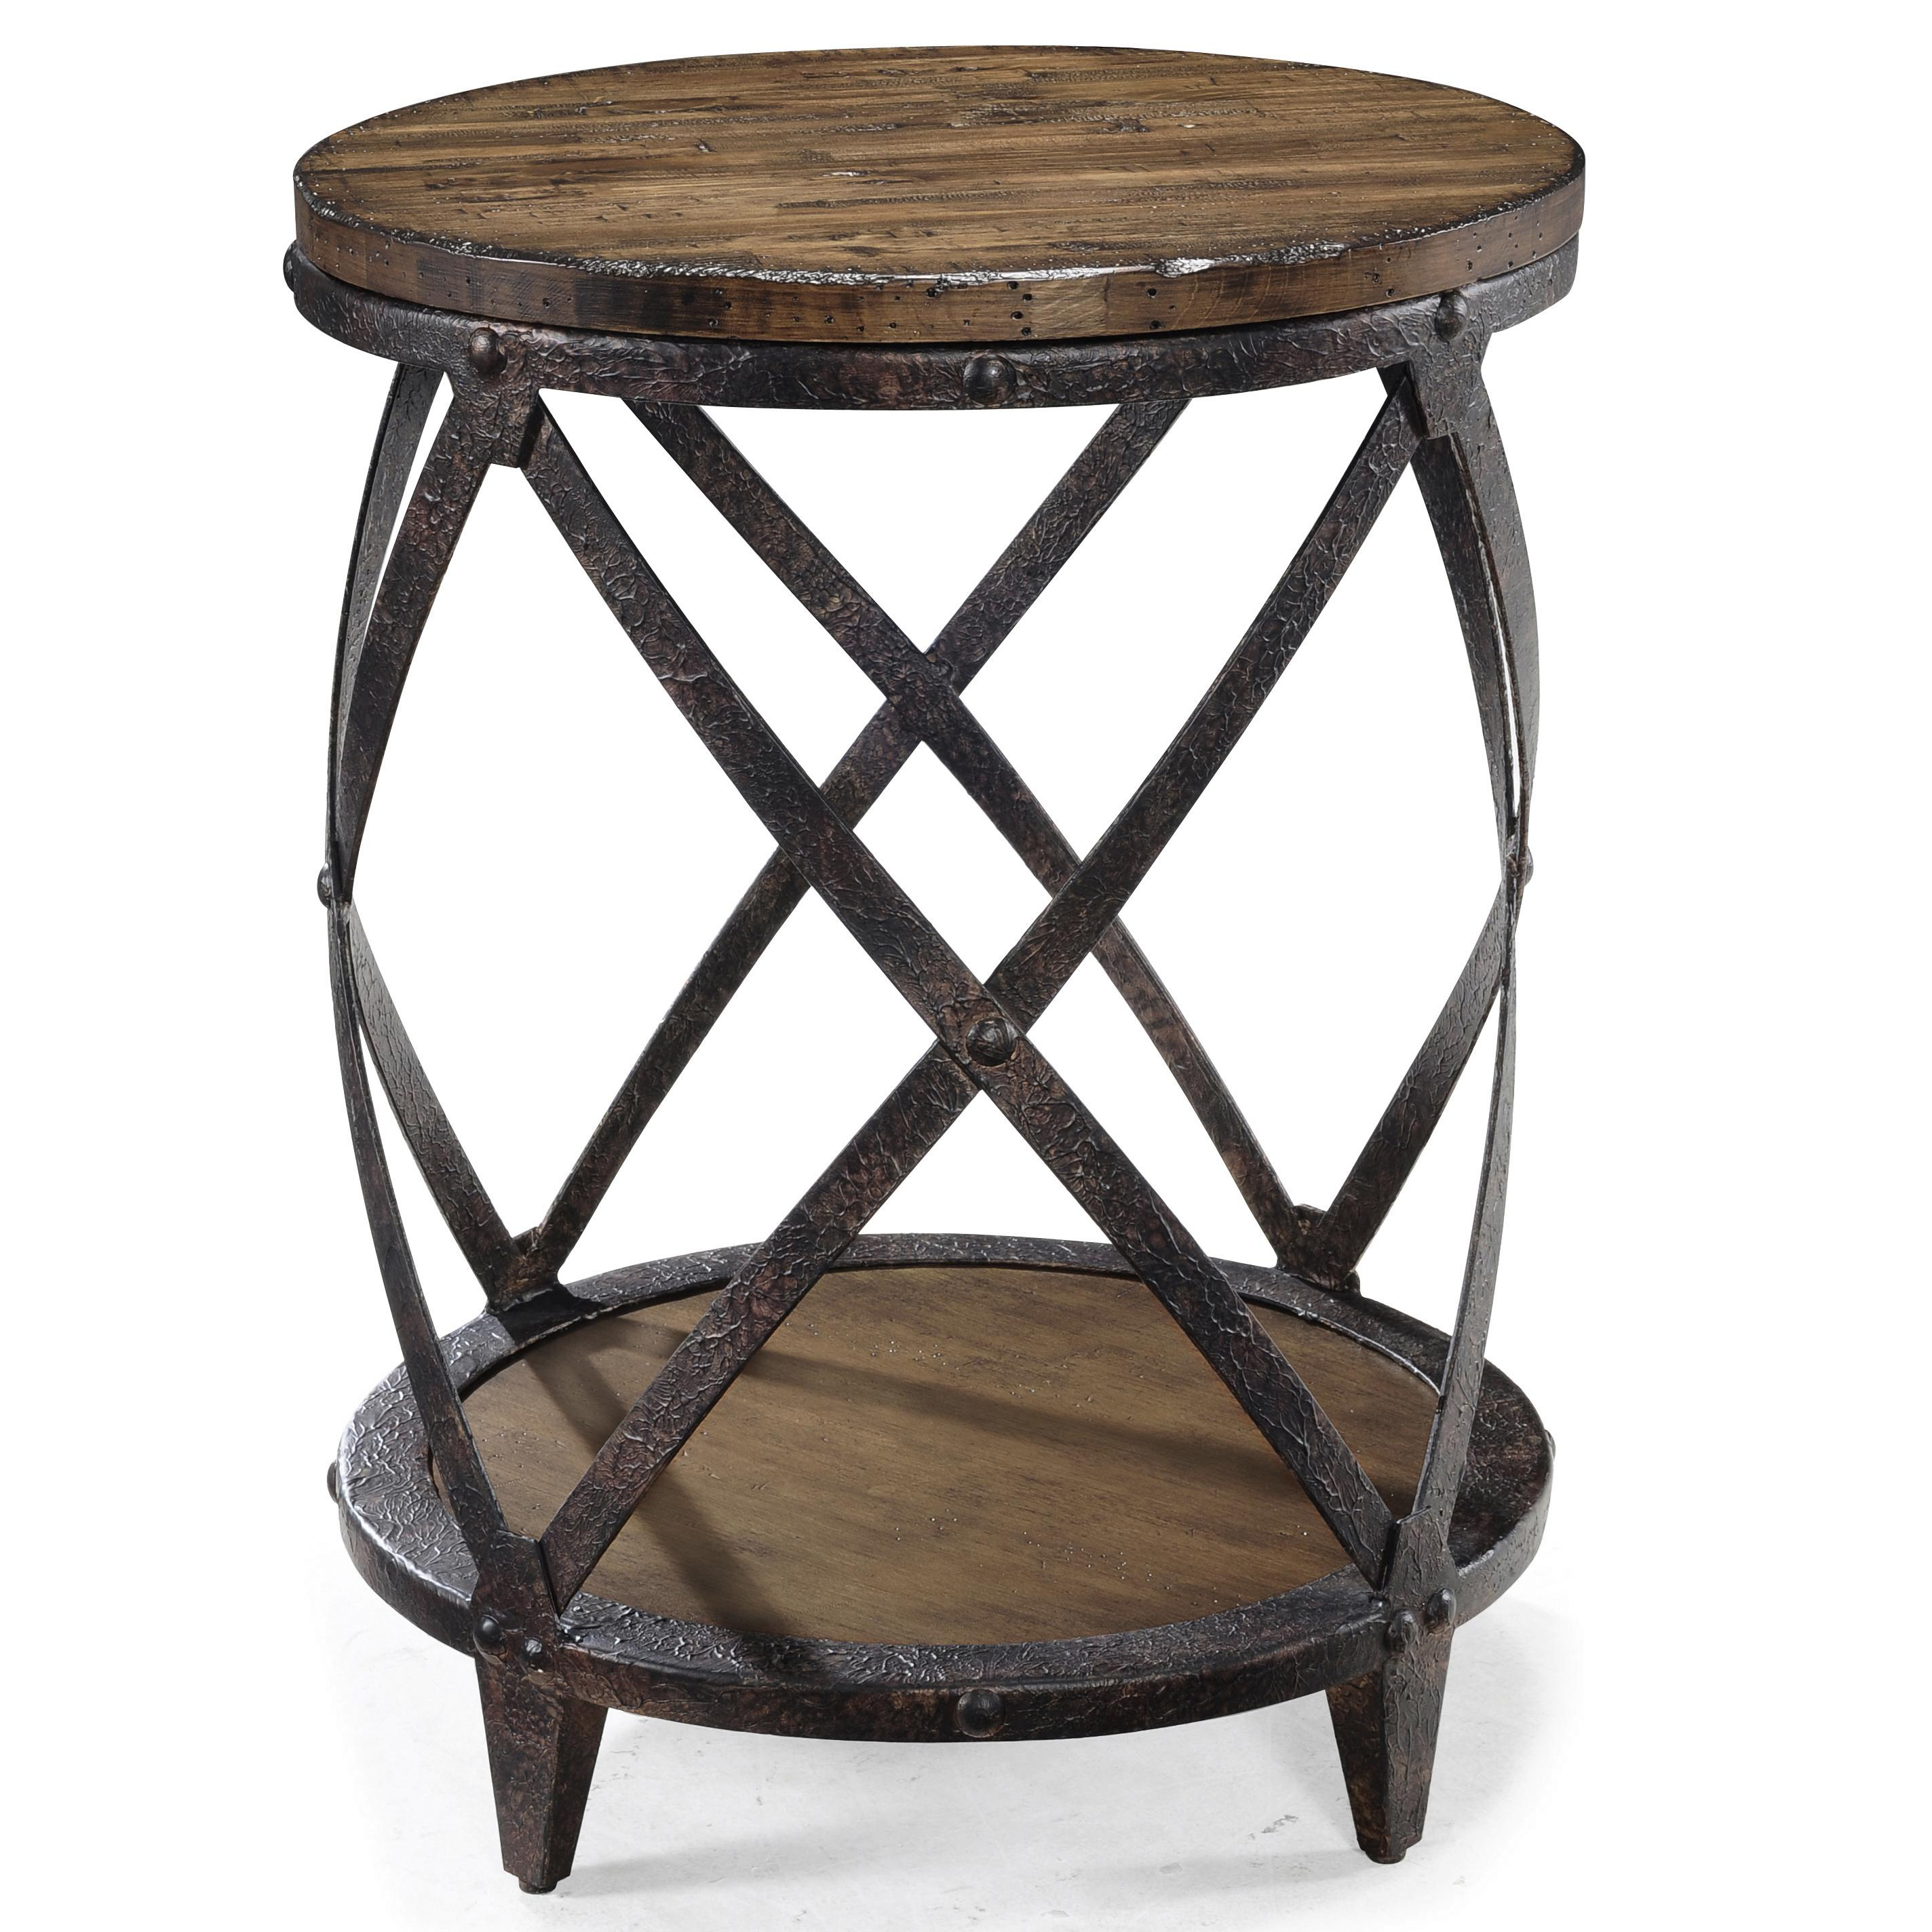 End Tables With Metal Legs Round Accent End Table With Rustic Iron Legs By Magnussen